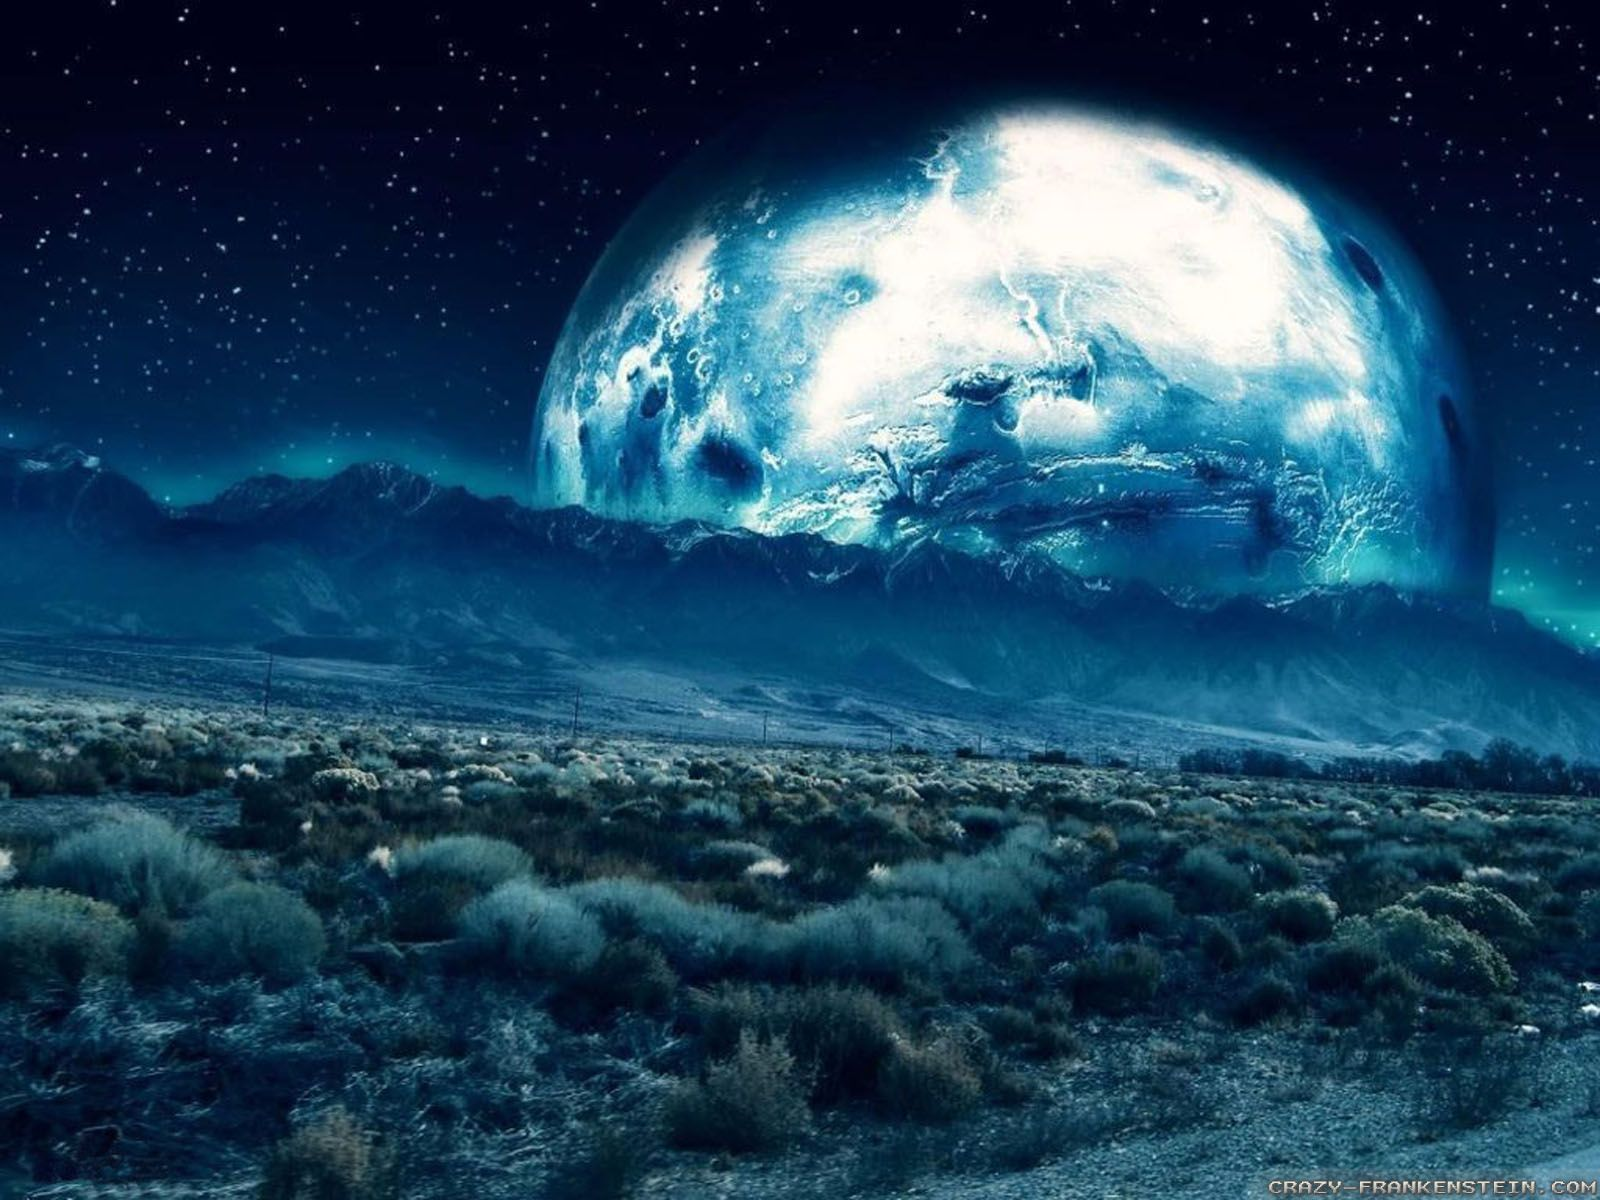 science fiction artwork wallpapers | hd wallpapers | pinterest